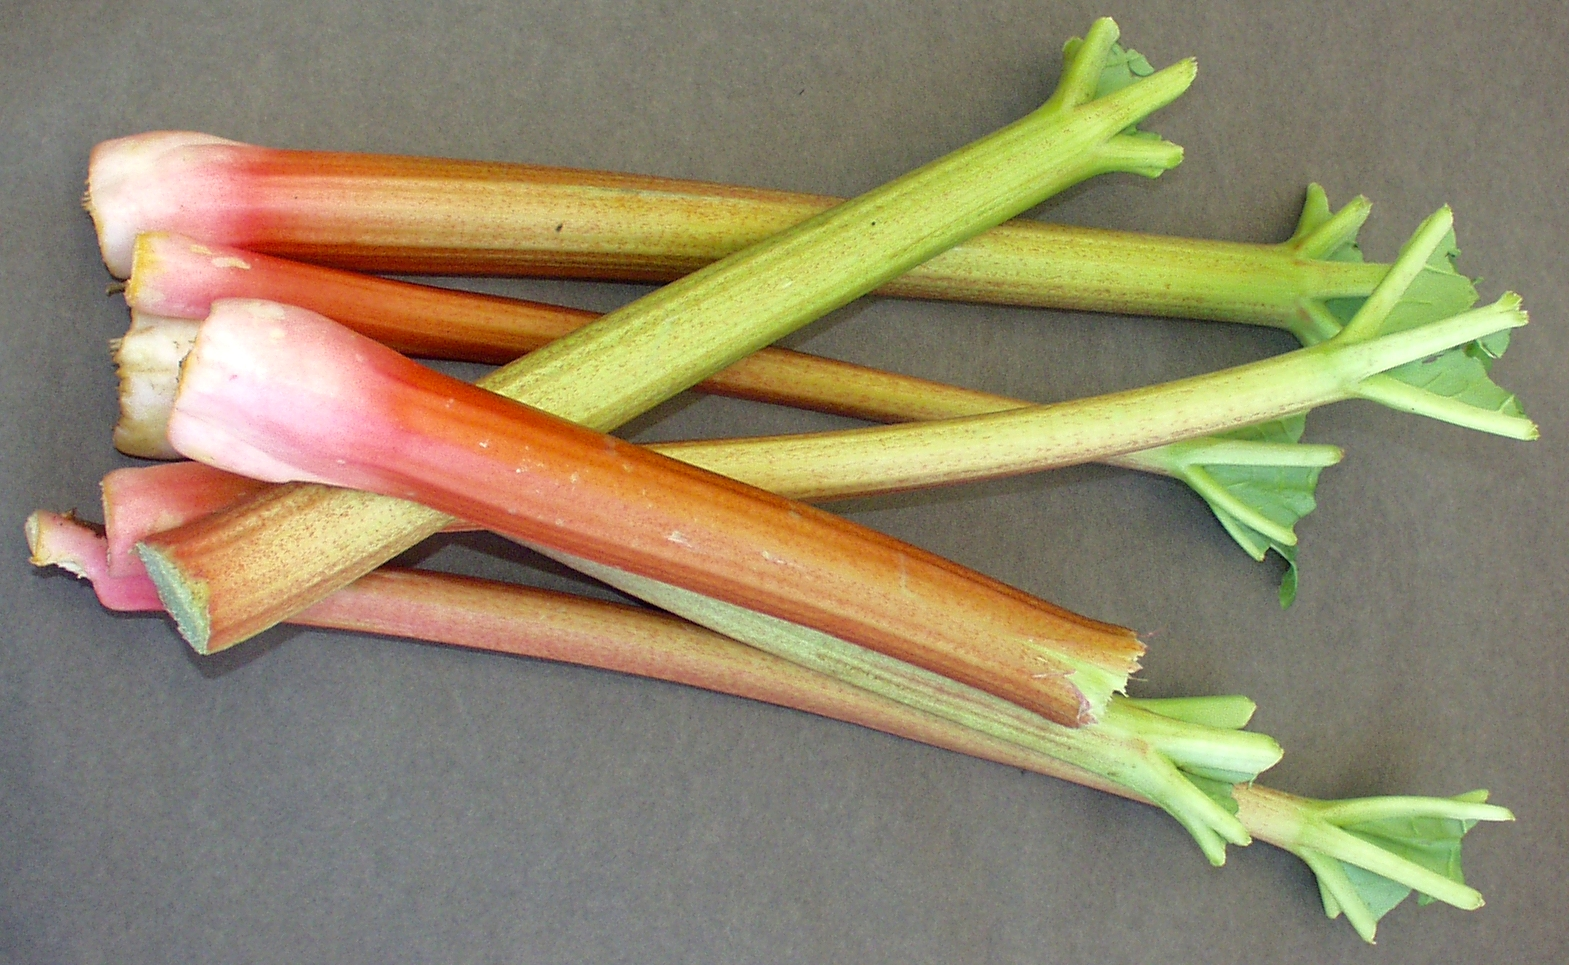 First of the season rhubarb from Alm Hill Gardens in Everson. Photo copyright 2009 by Zachary D. Lyons.